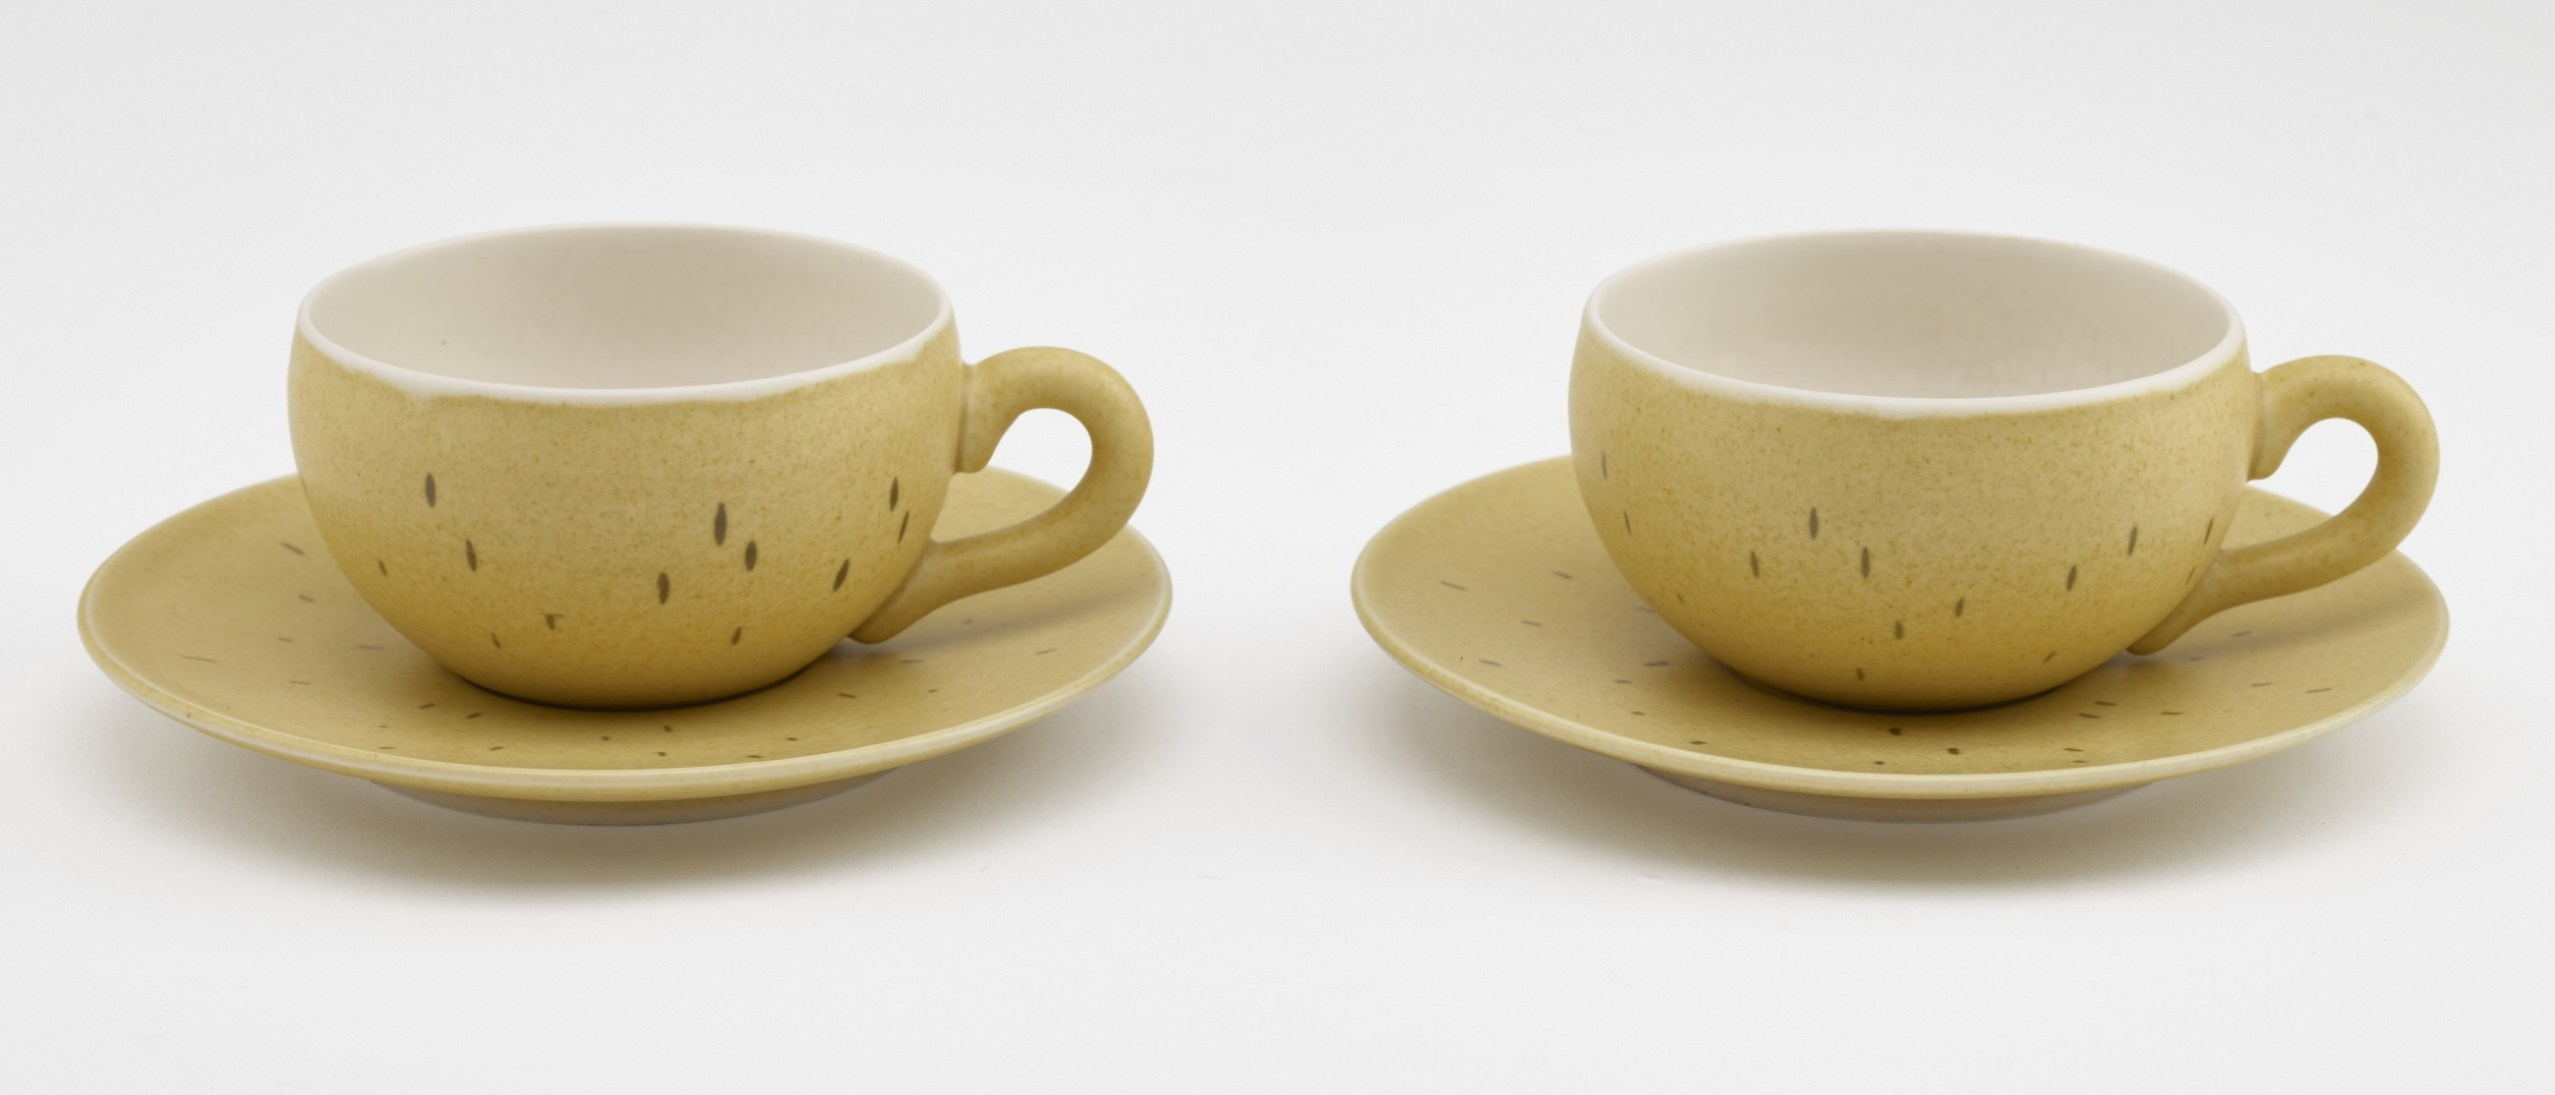 Photo of Pair of coffee cups and saucers; Yamada Hikaru (1924–2001); Japan, Kyoto, 1960s; Stoneware with yellow and clear glazes; Gift of Halsey and Alice North; Arthur M. Sackler Gallery S2017.15.1–2